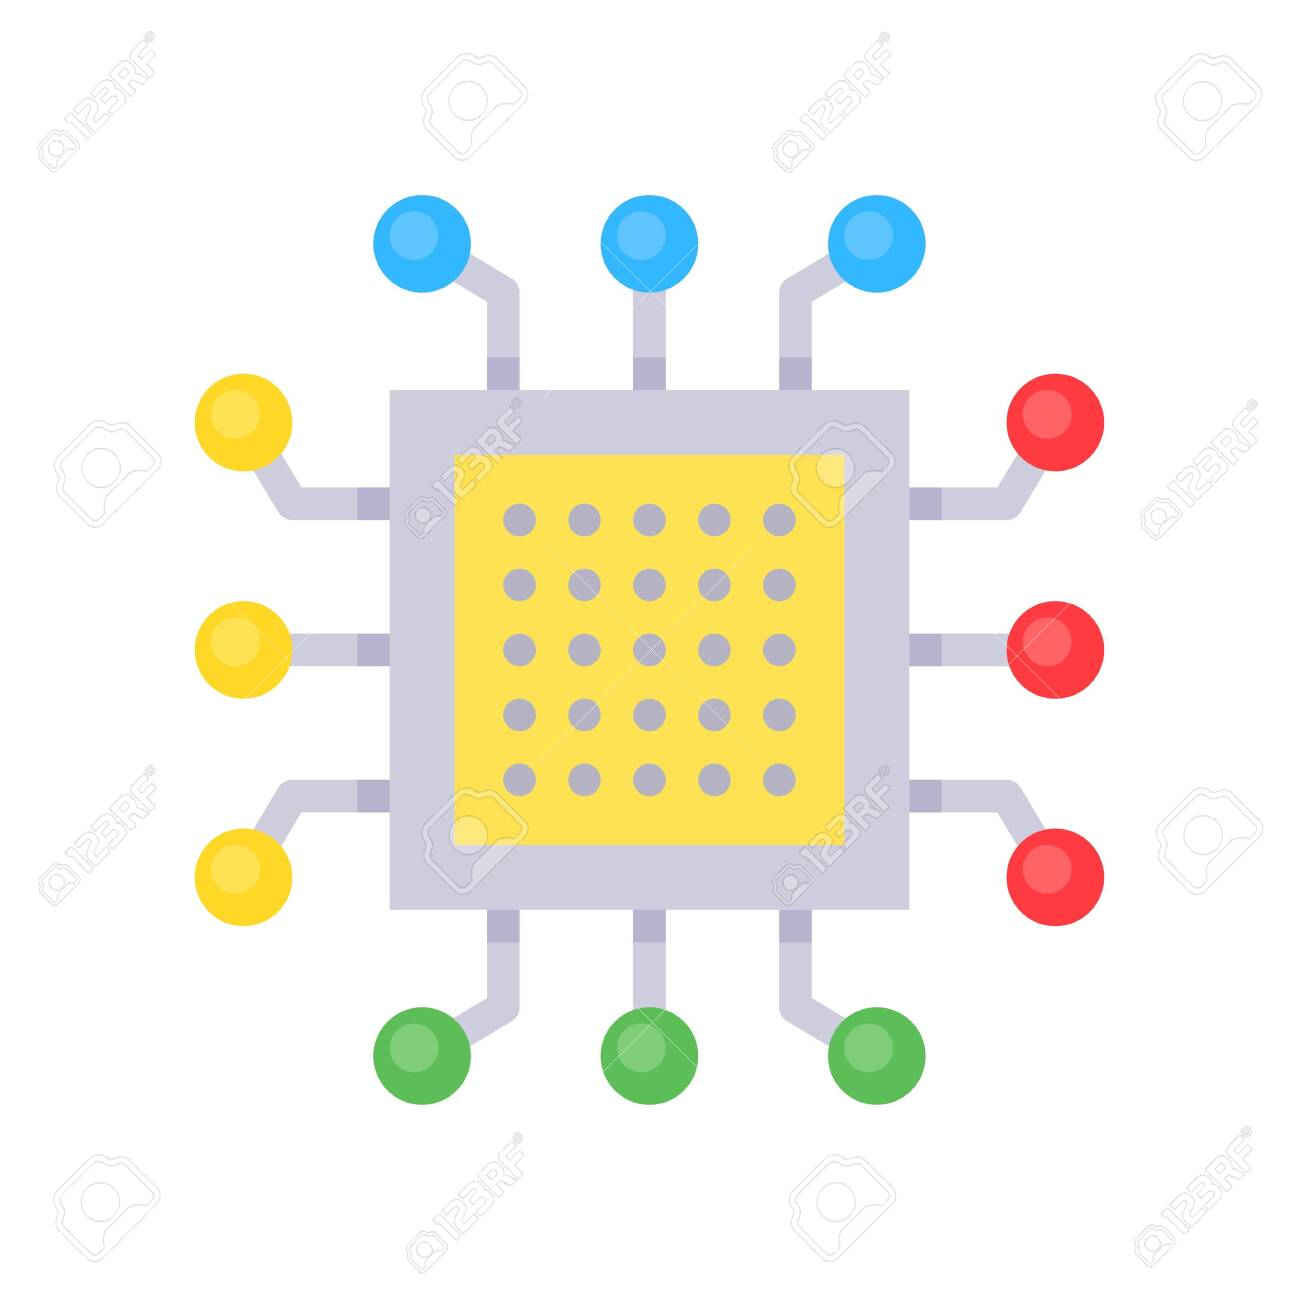 Integrated circuit vector, Artificial related flat style icon - 136139982